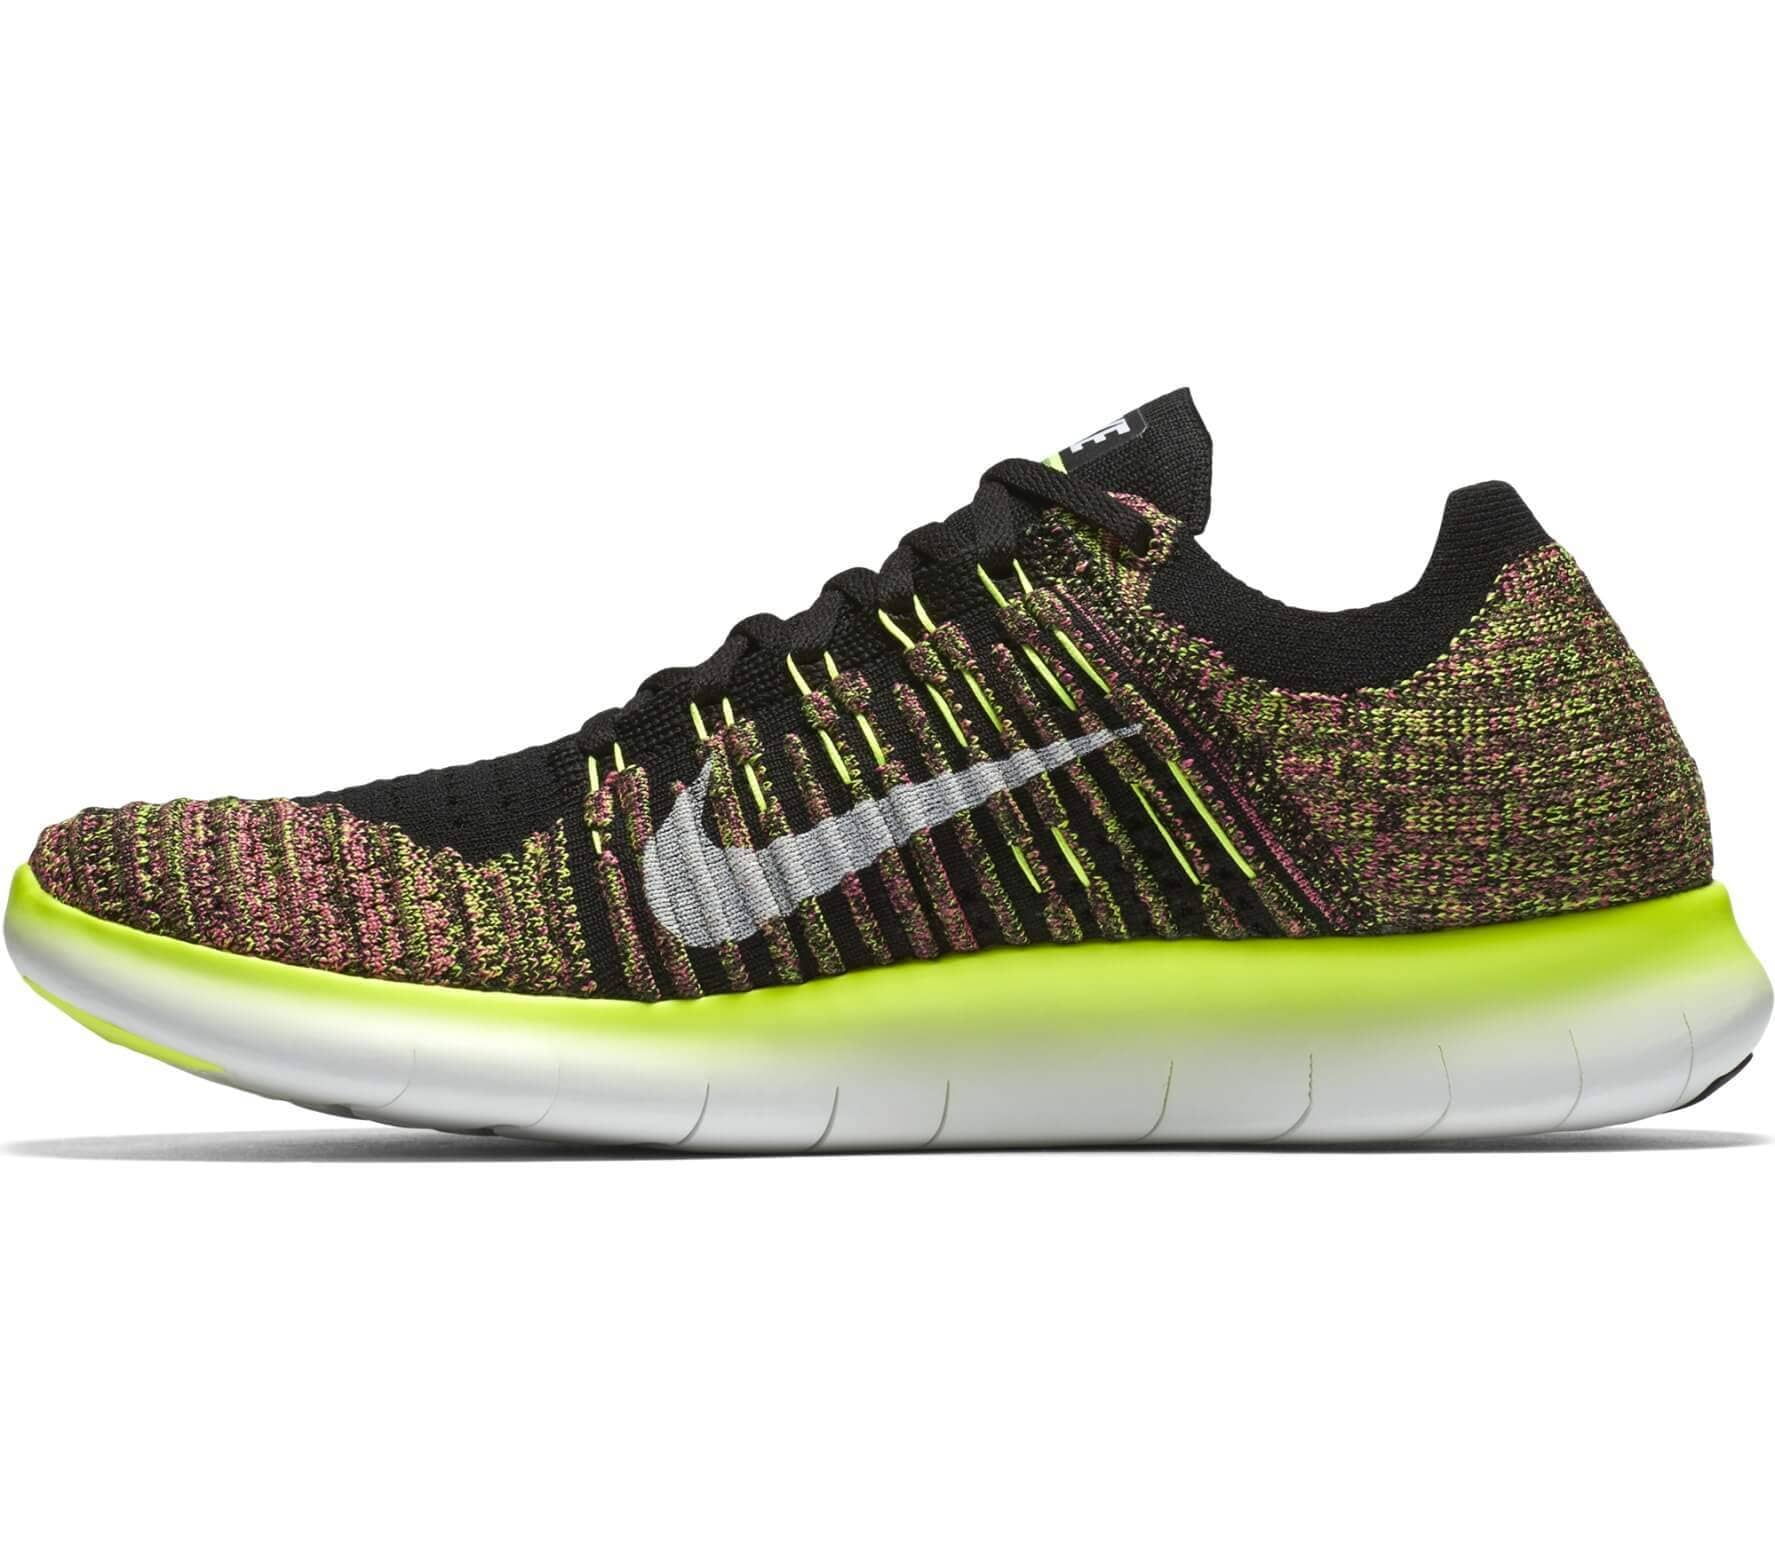 8a6ff1f9beef3 Nike - Free Run Flyknit OC men s running shoes (multi coloured ...